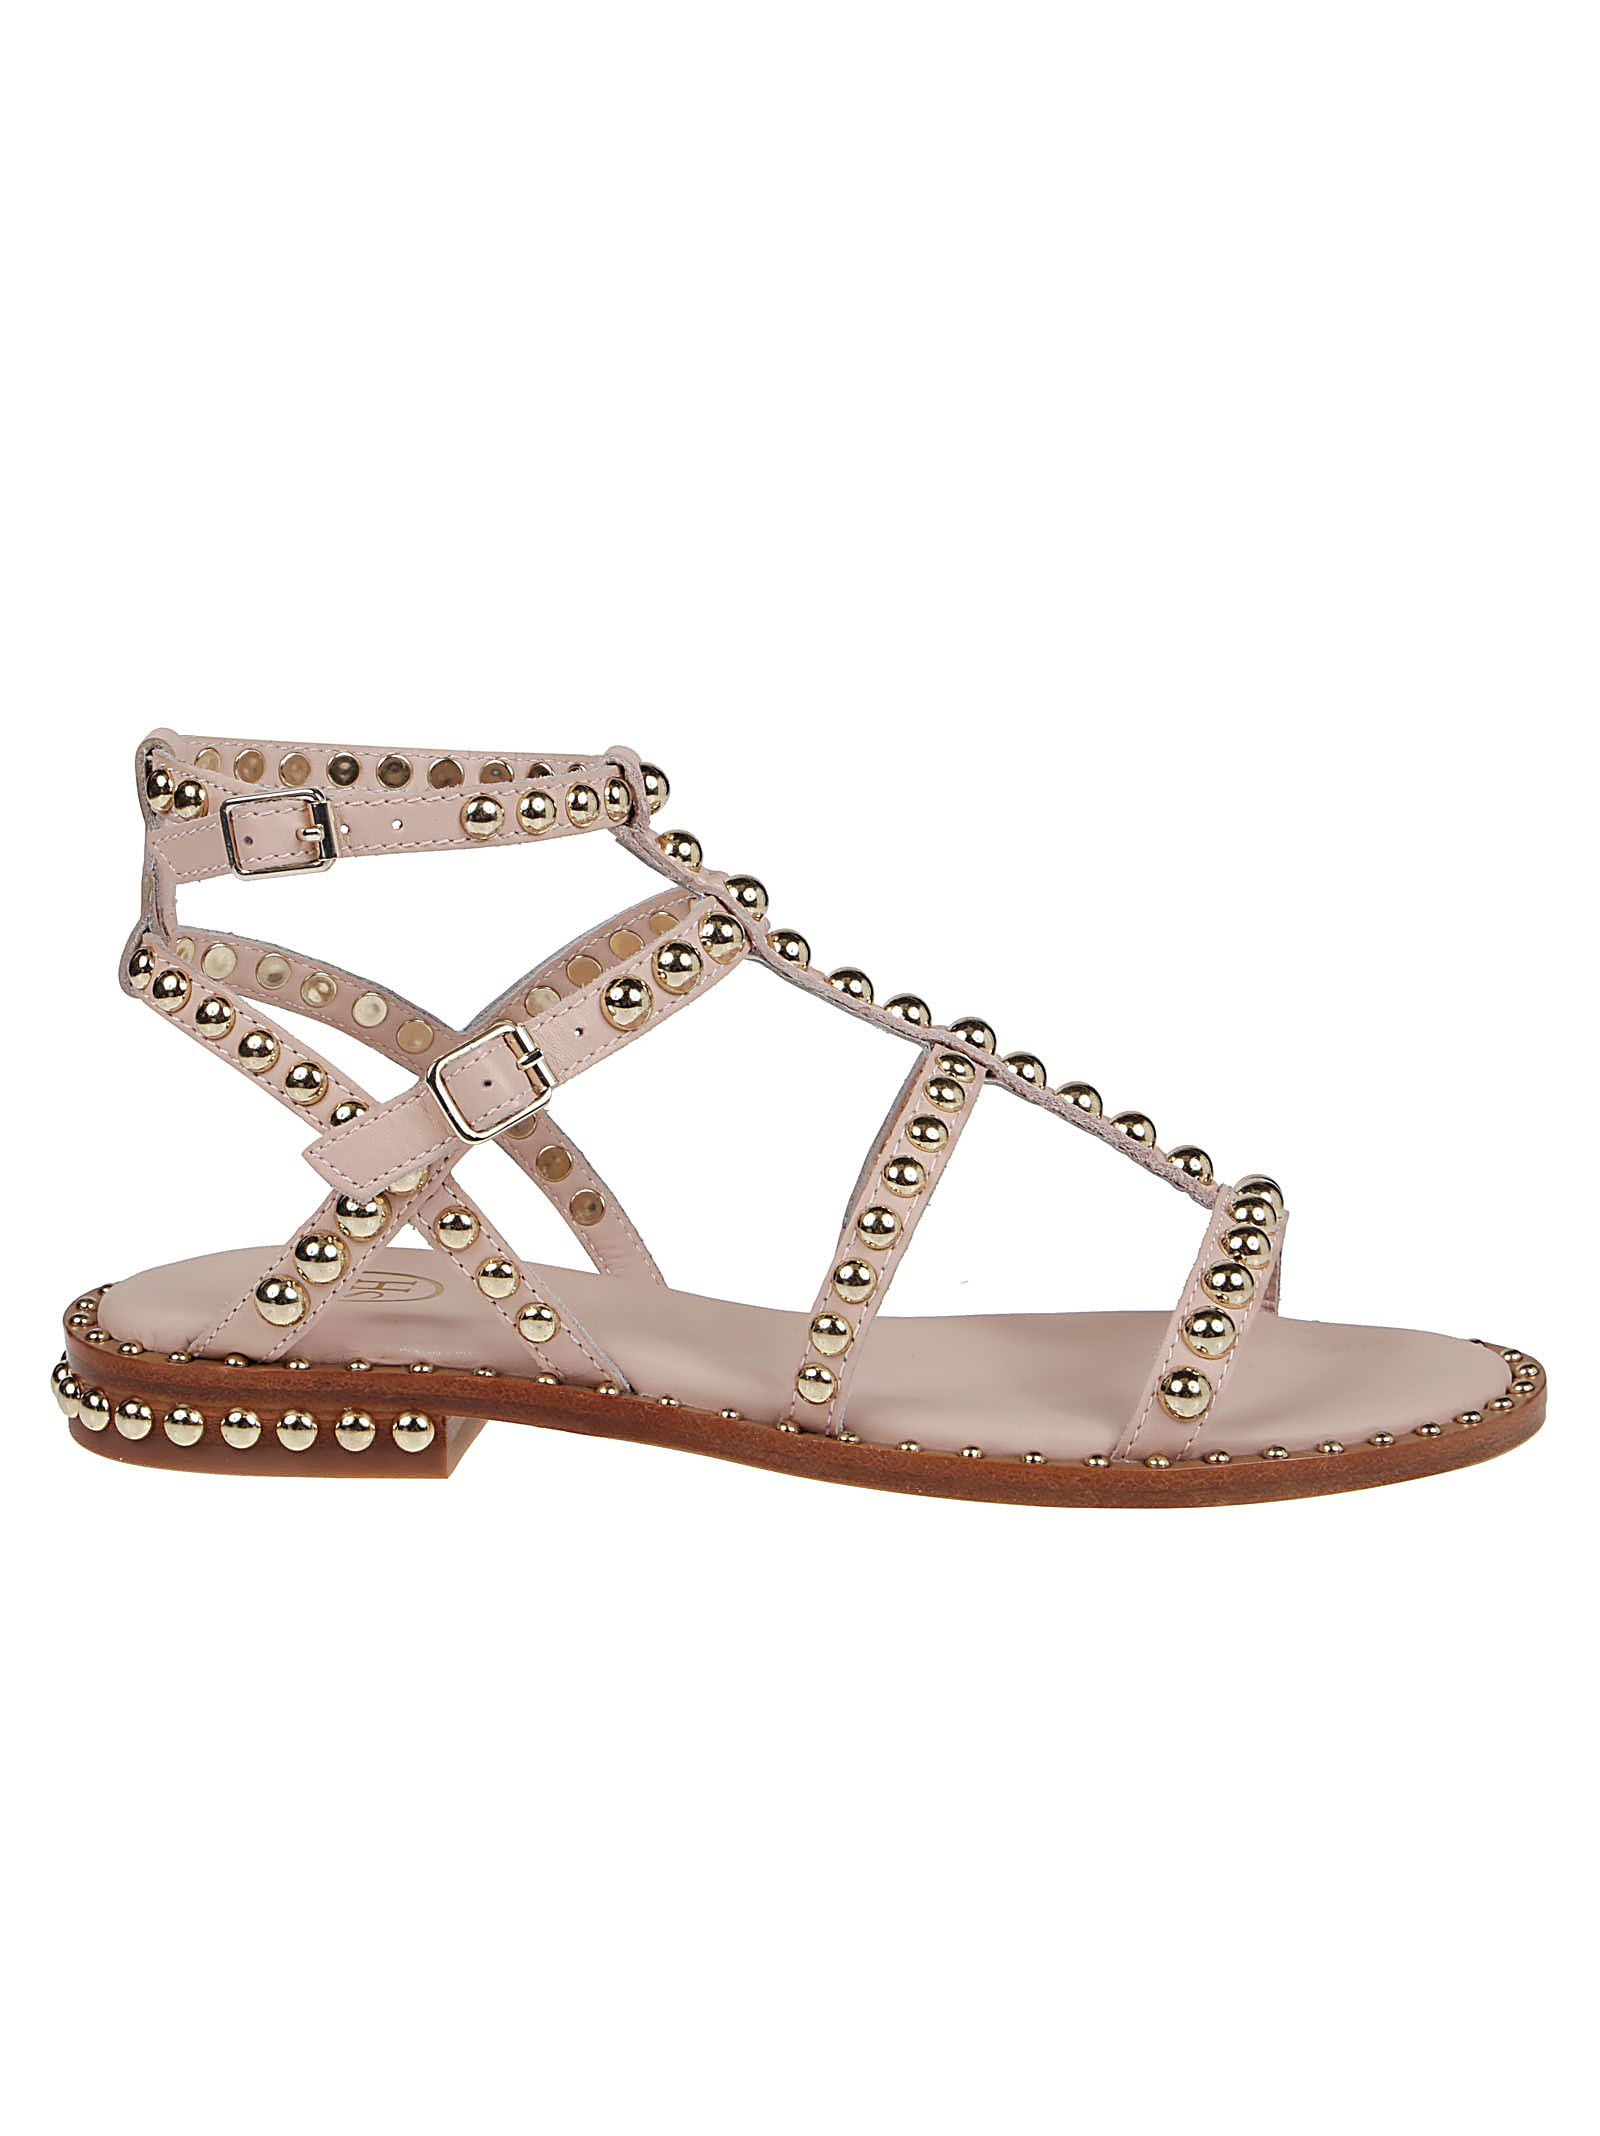 Ash Leathers ASH WOMEN'S PRECIOUS01SOFT PINK OTHER MATERIALS SANDALS